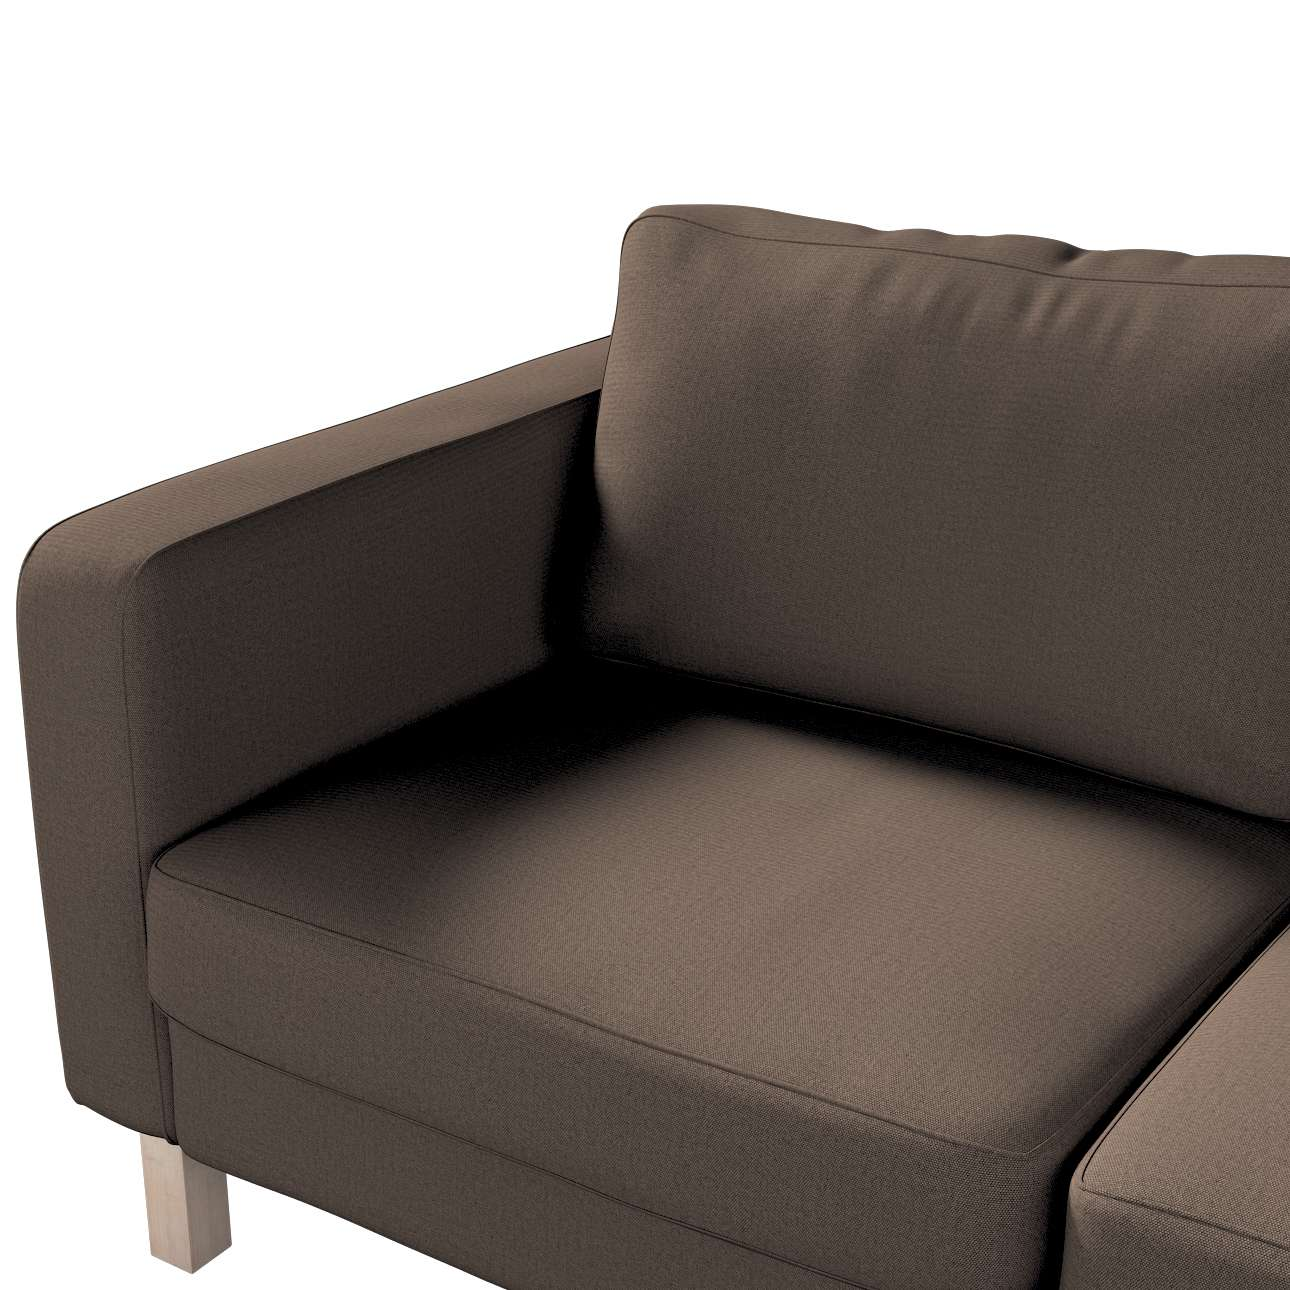 Karlstad 2-seater sofa cover in collection Etna, fabric: 705-08